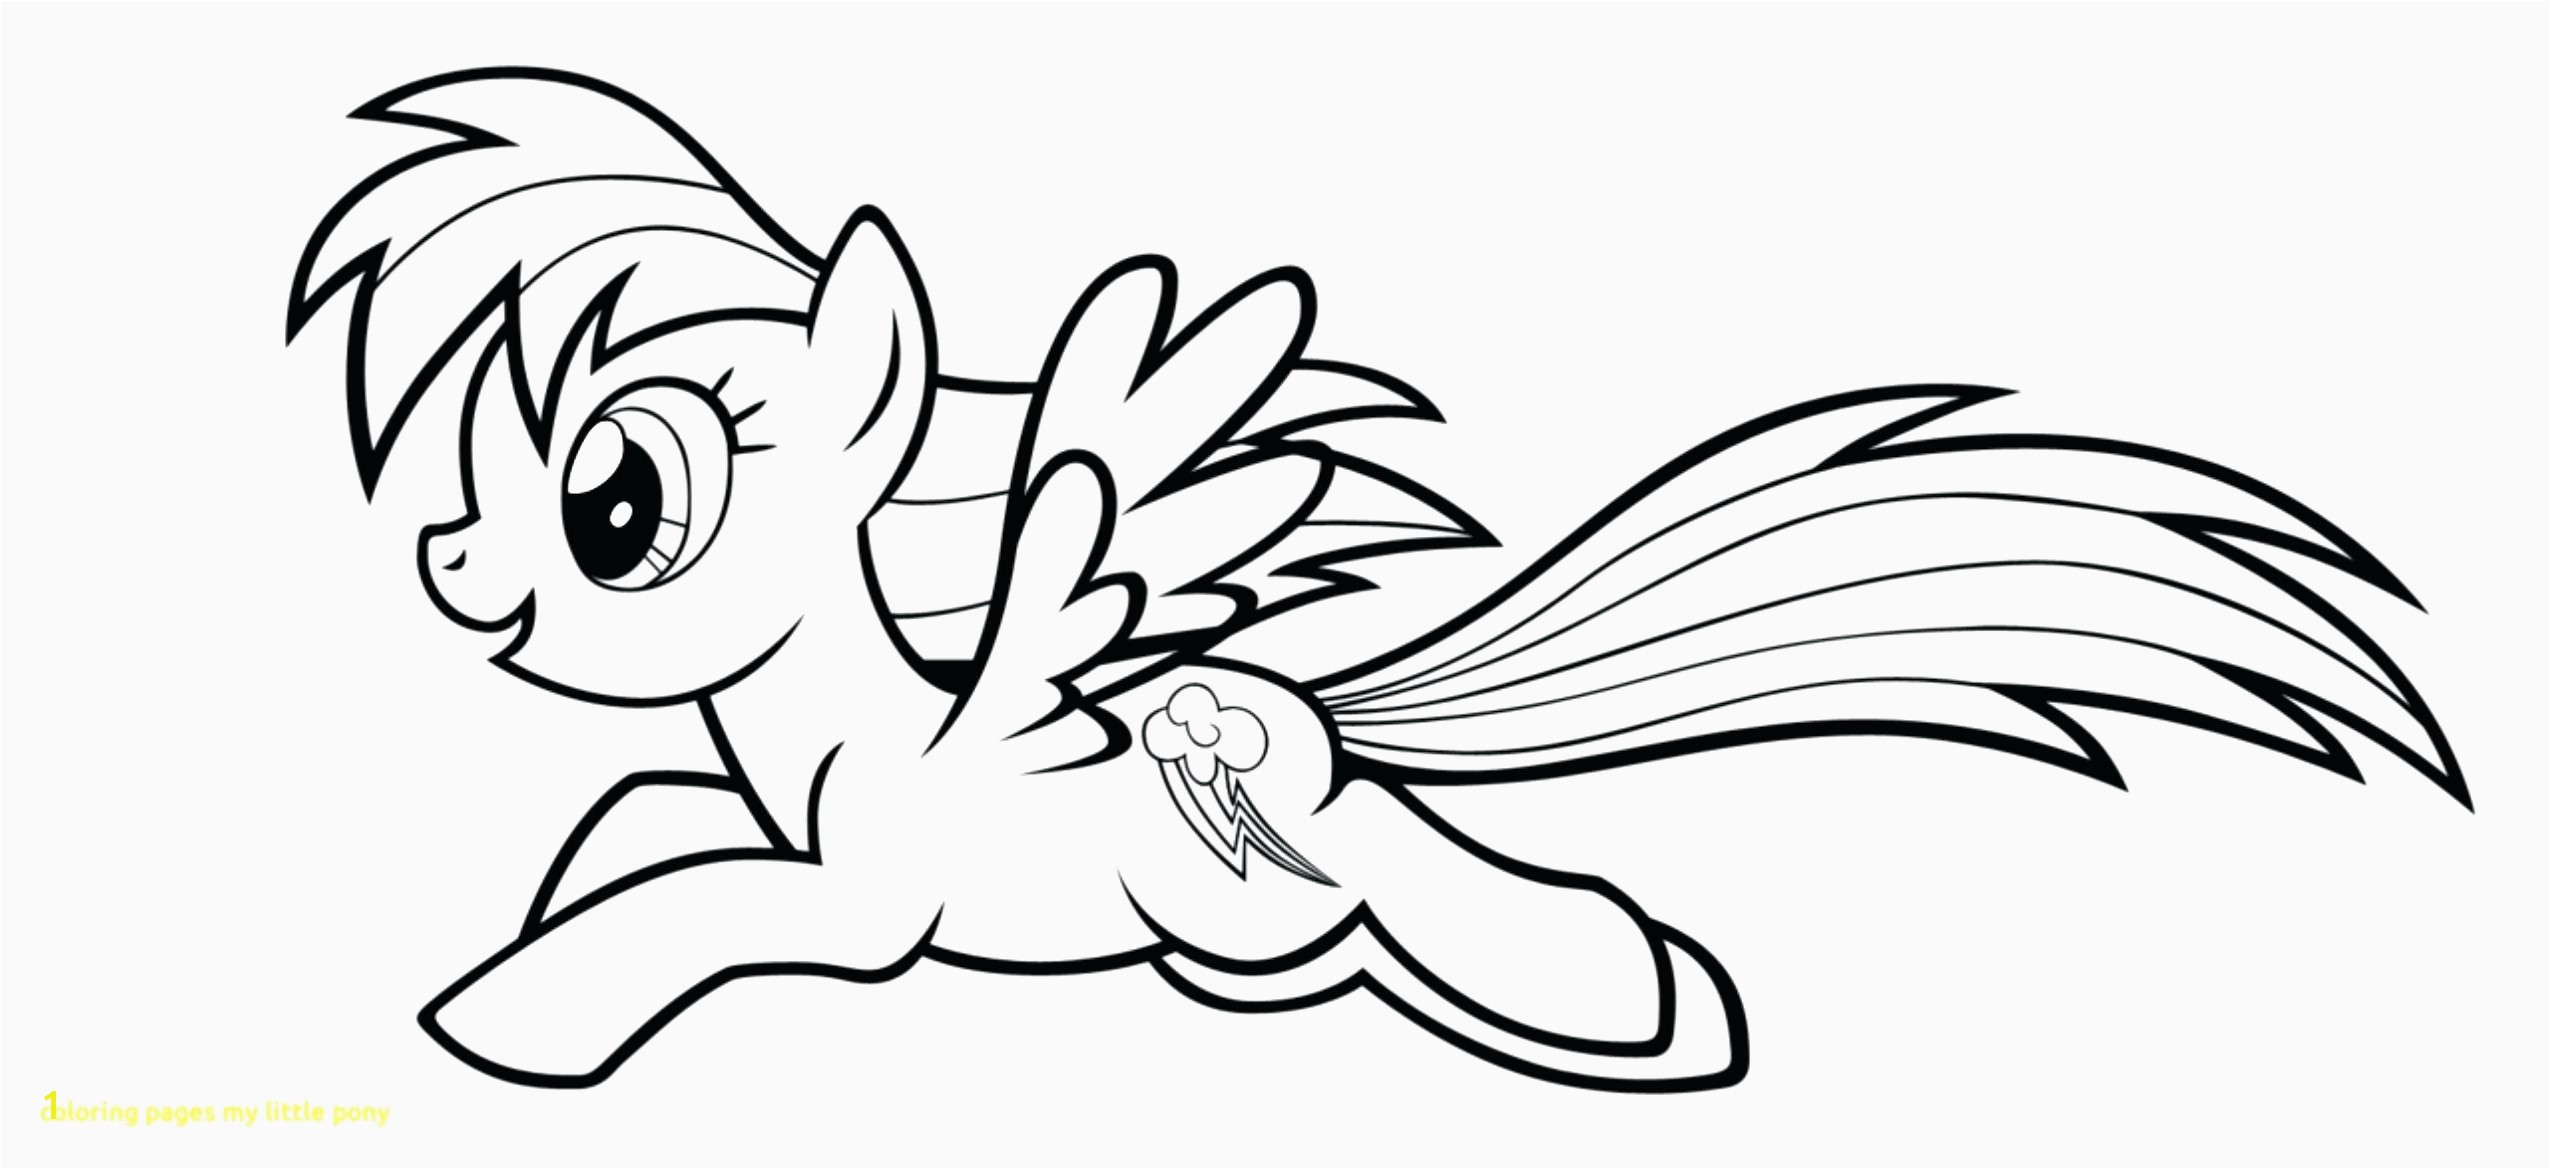 Mlp Coloring Pages Applejack Best Mlp Coloring Pages Rarity Luxury Pin Od Vanessa forbes Na Cartoon